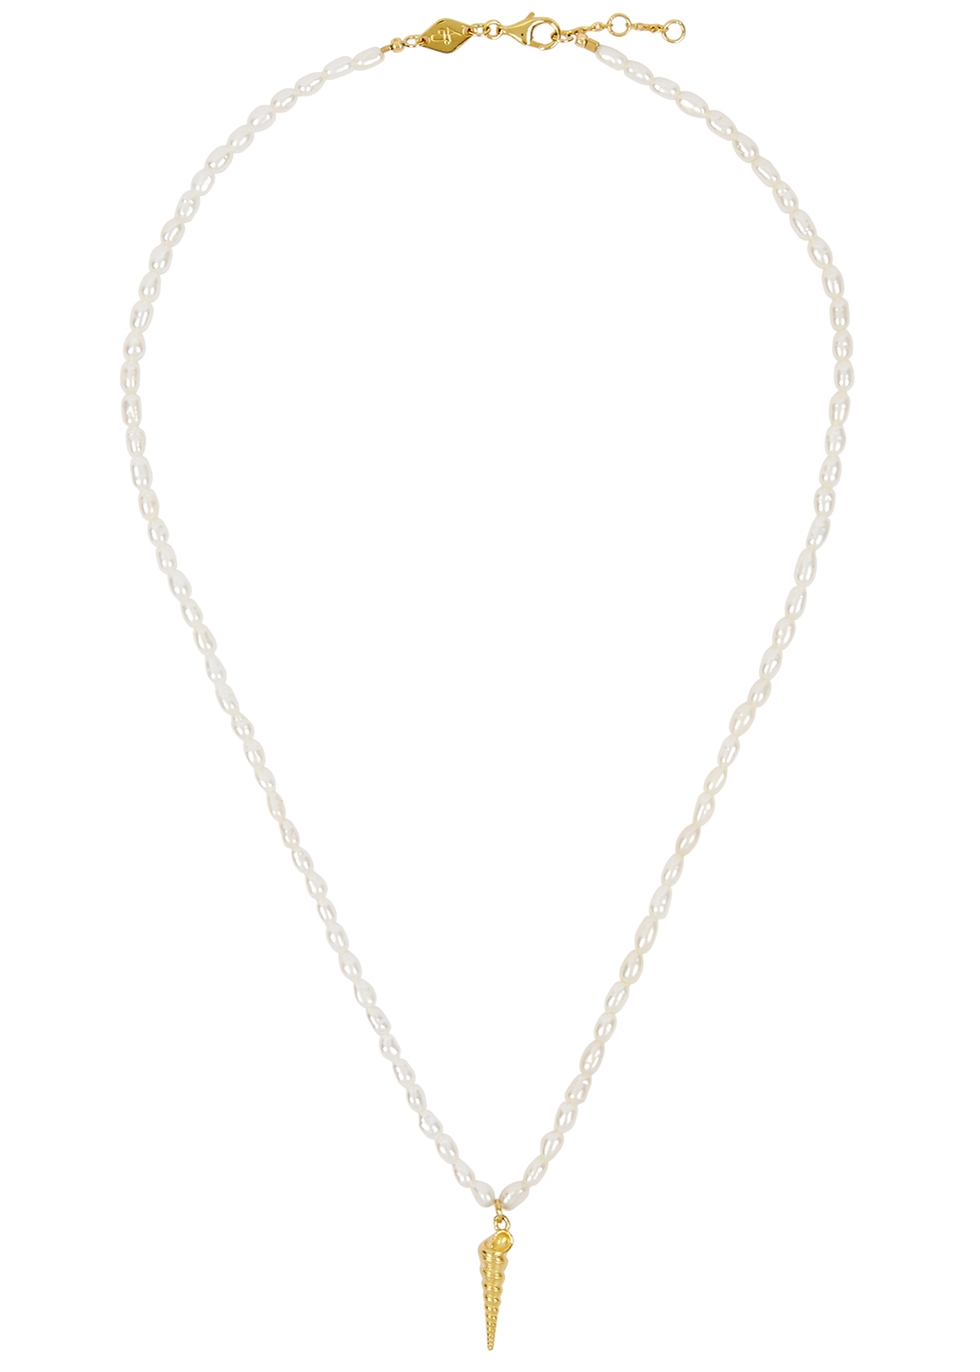 Turret Shell 18kt gold-plated necklace - ANNI LU